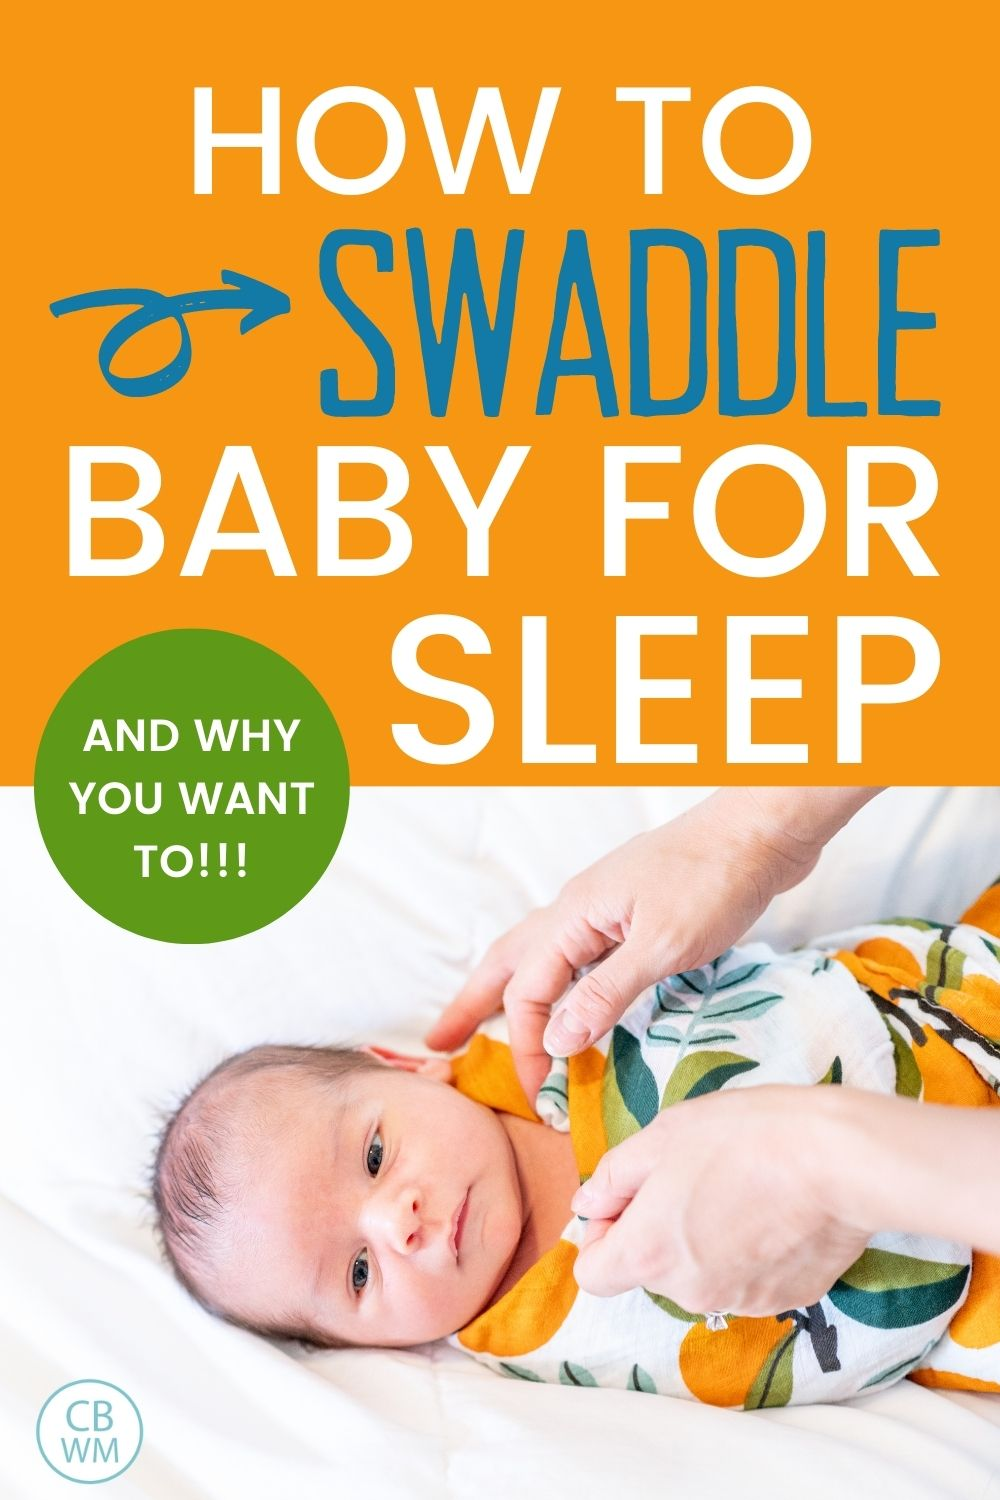 How to swaddle baby for sleep pinnable image